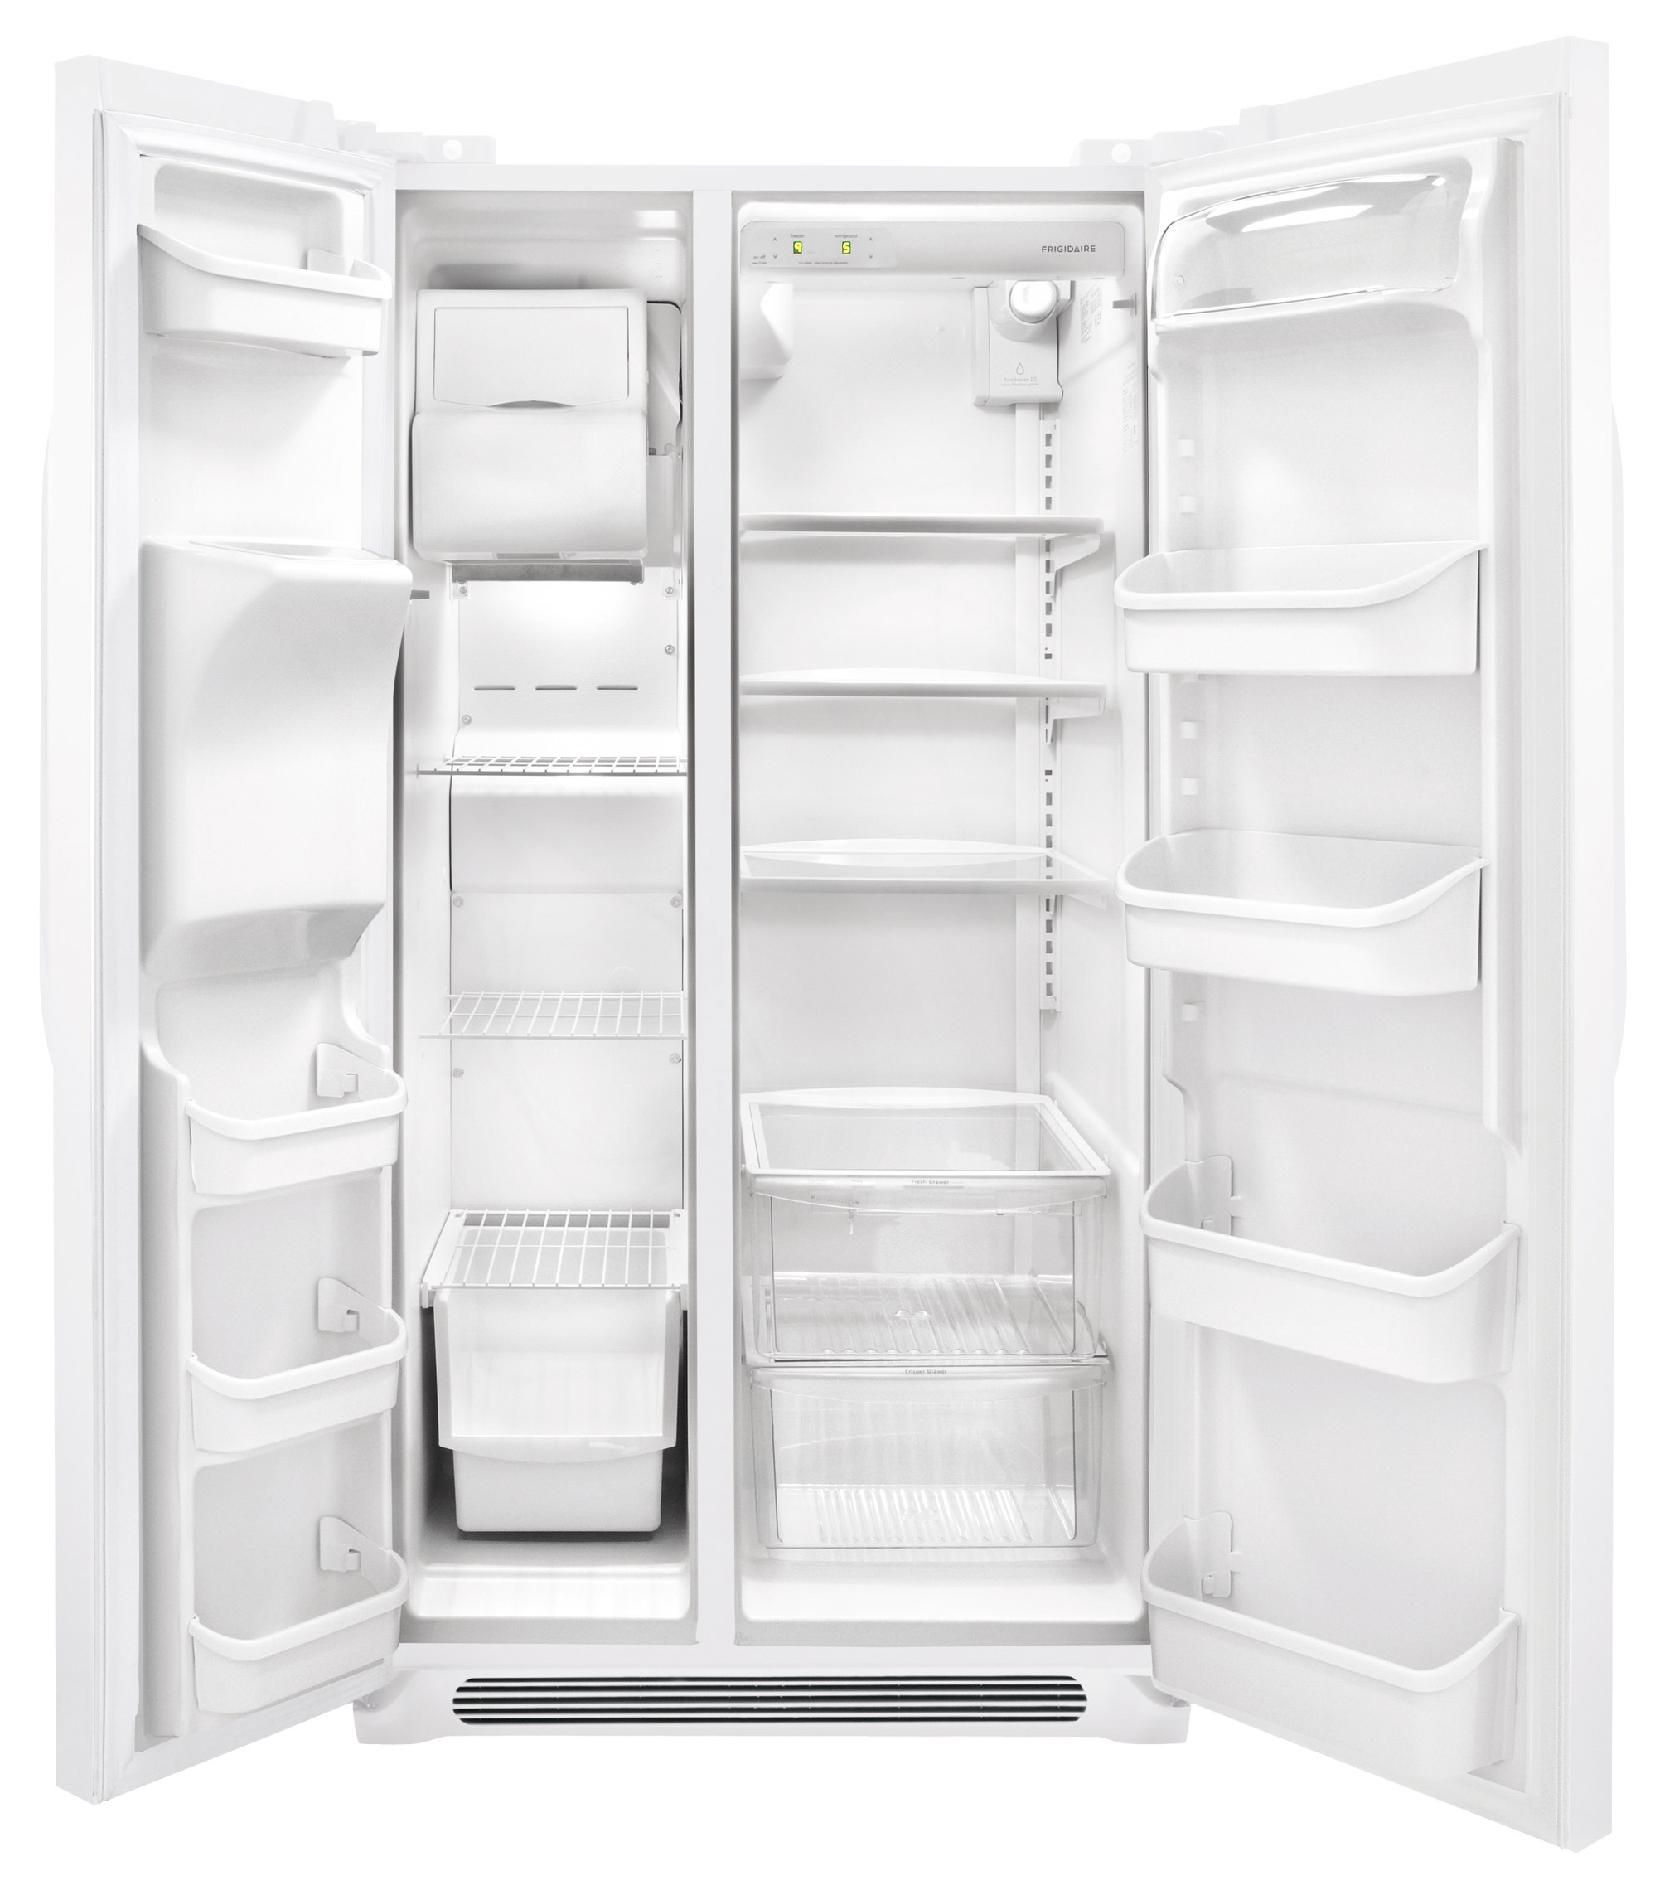 Frigidaire FFHS2622MW 25.5 cu. ft. Side-by-Side Refrigerator - White